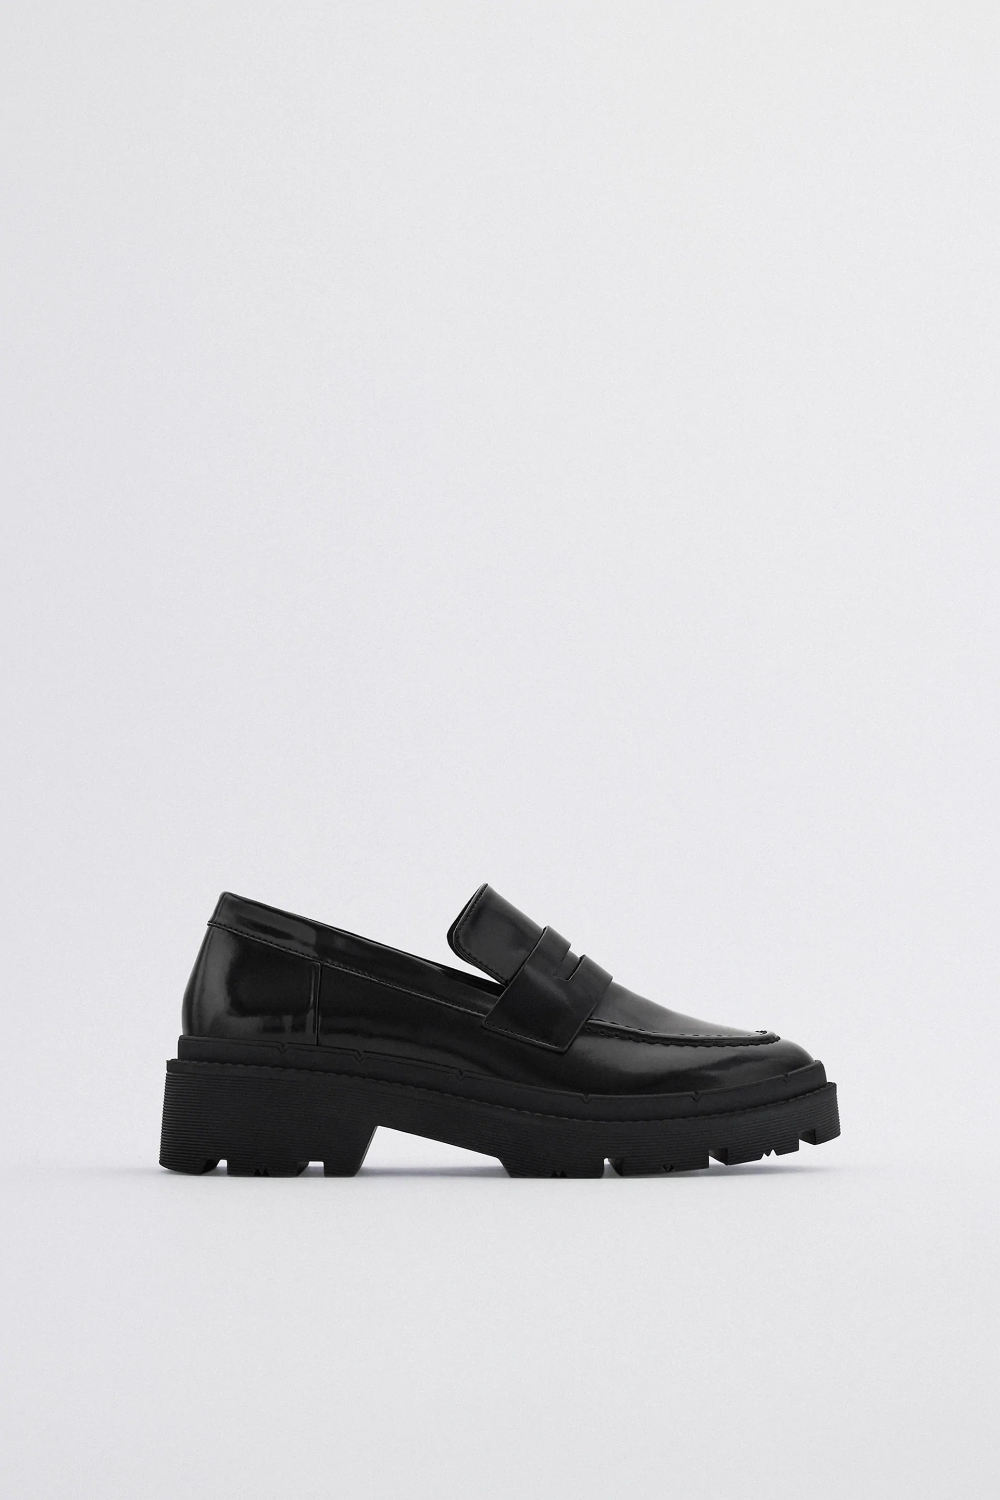 Treaded Sole Loafers Zara United States Loafers Shoes With Leggings Shoes [ 1500 x 1000 Pixel ]